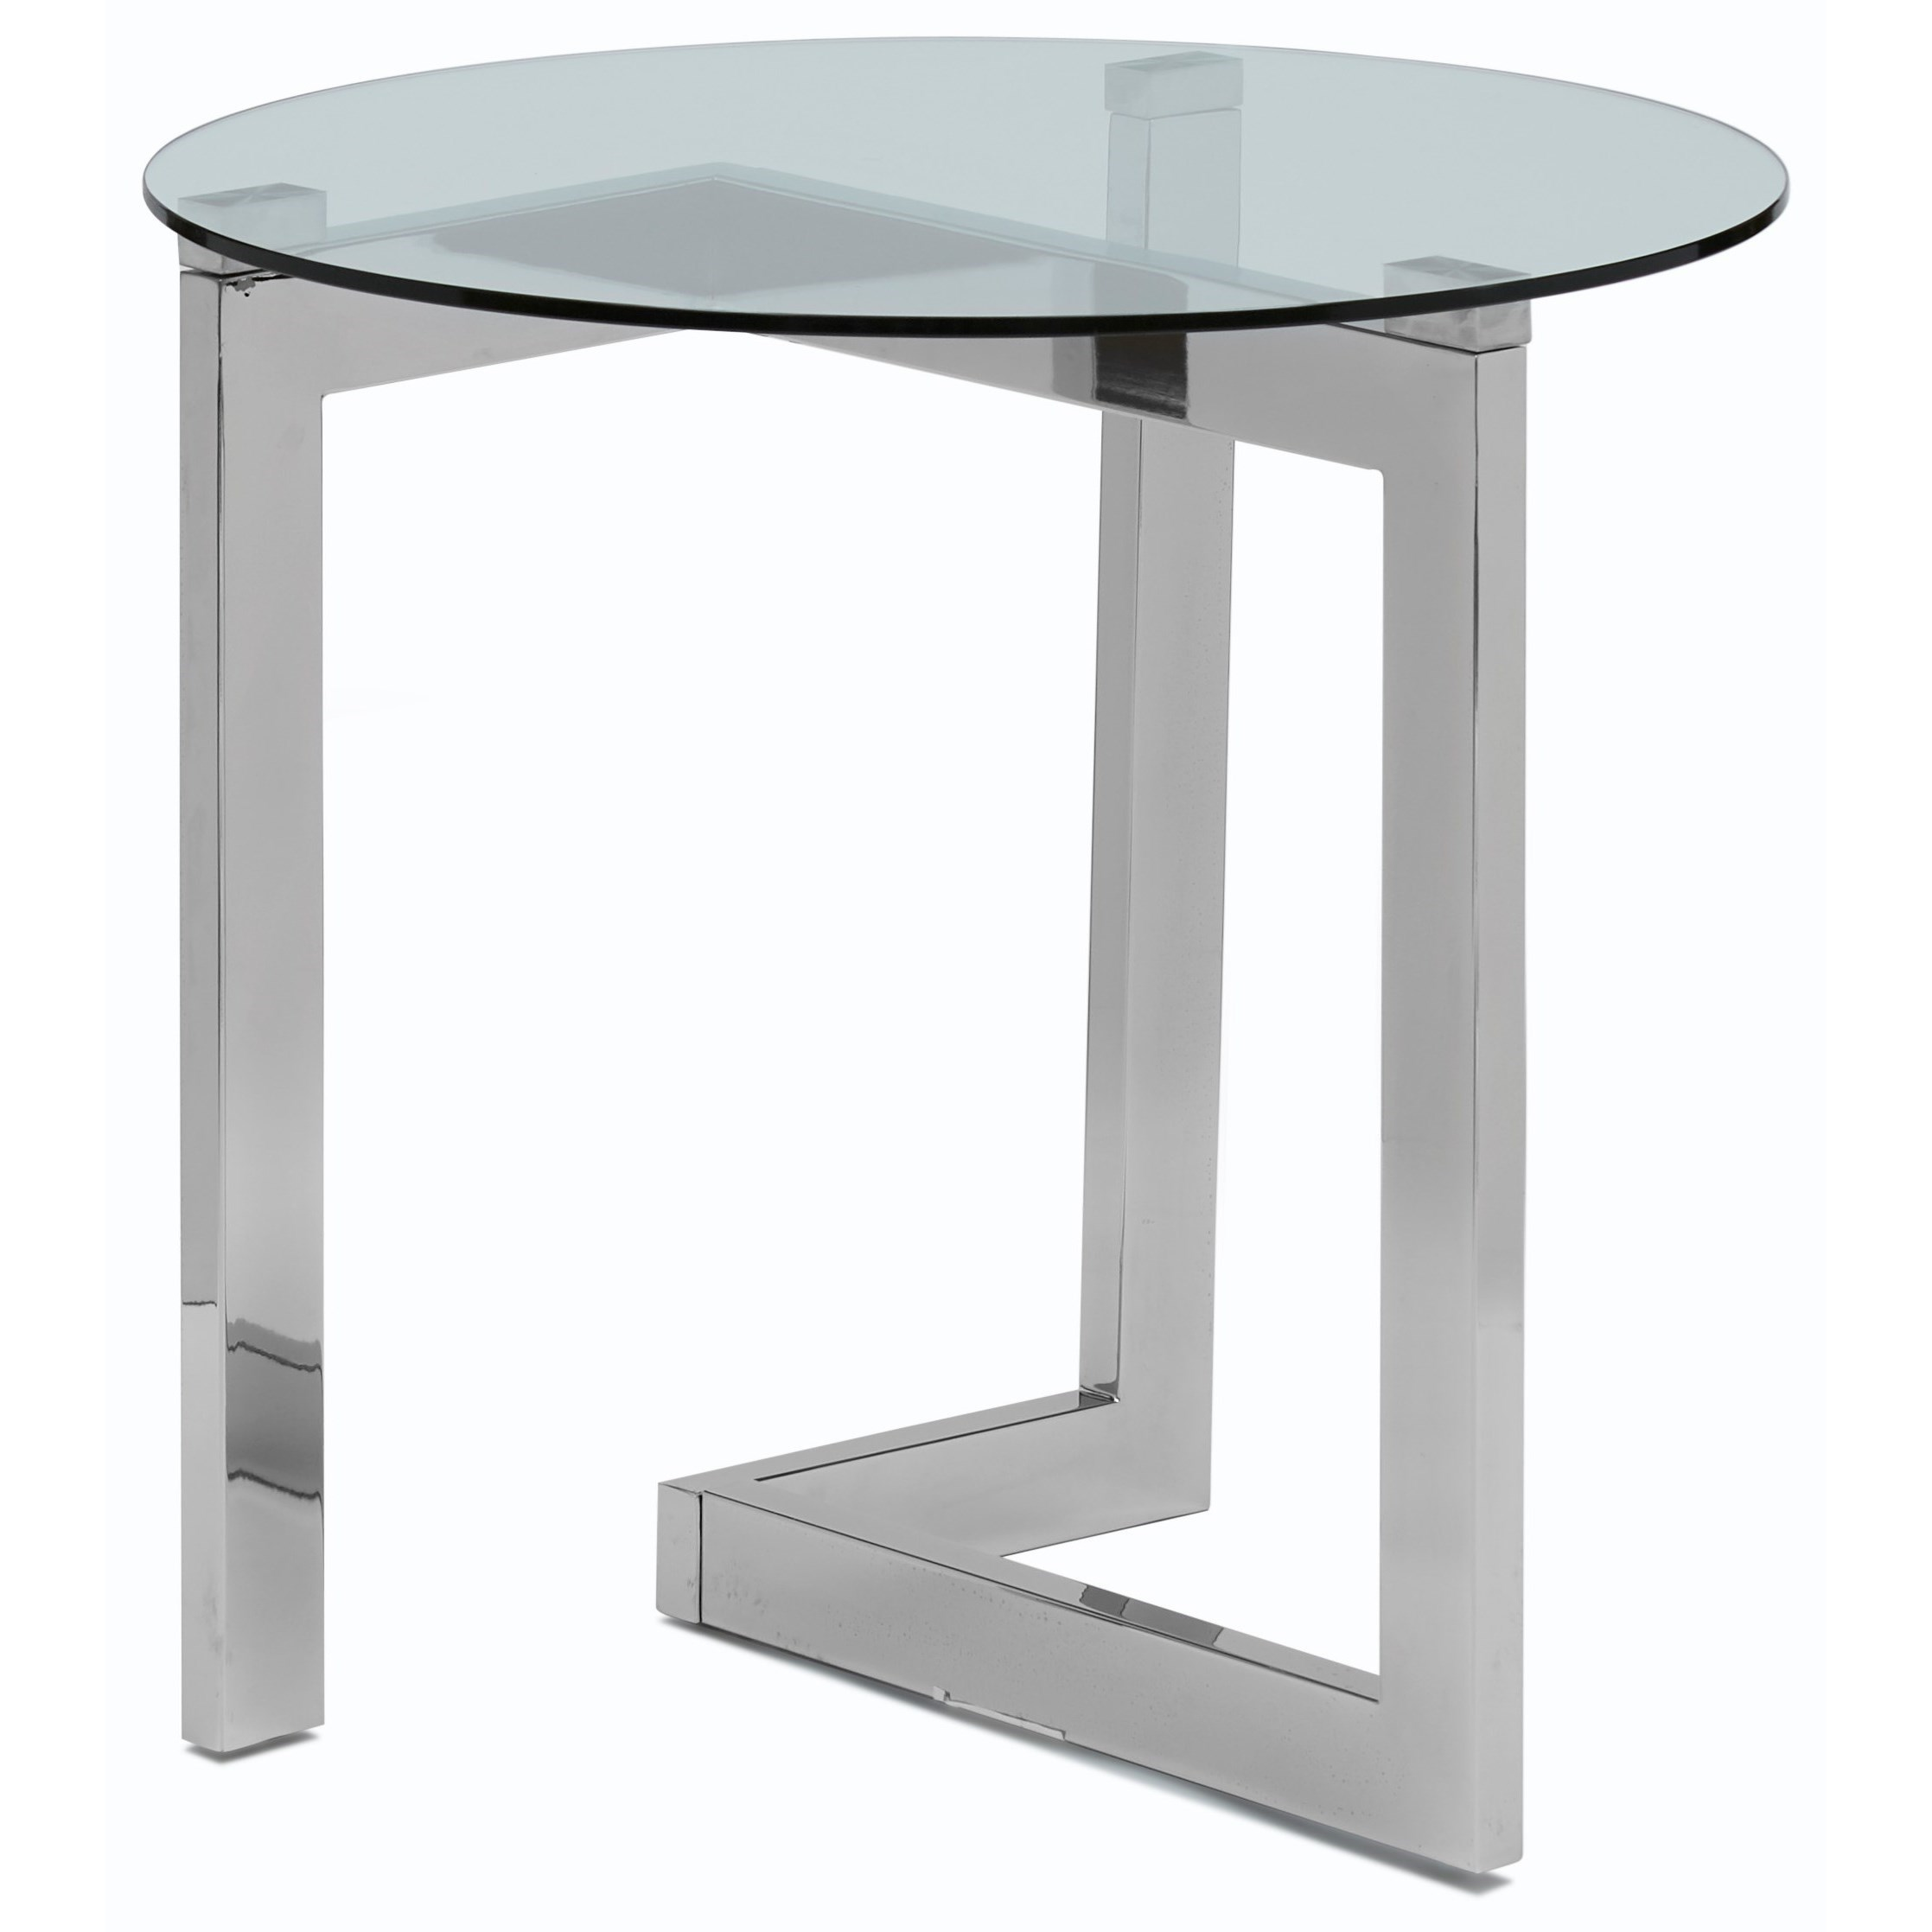 Contemporary Round End Table with Tempered Glass Top